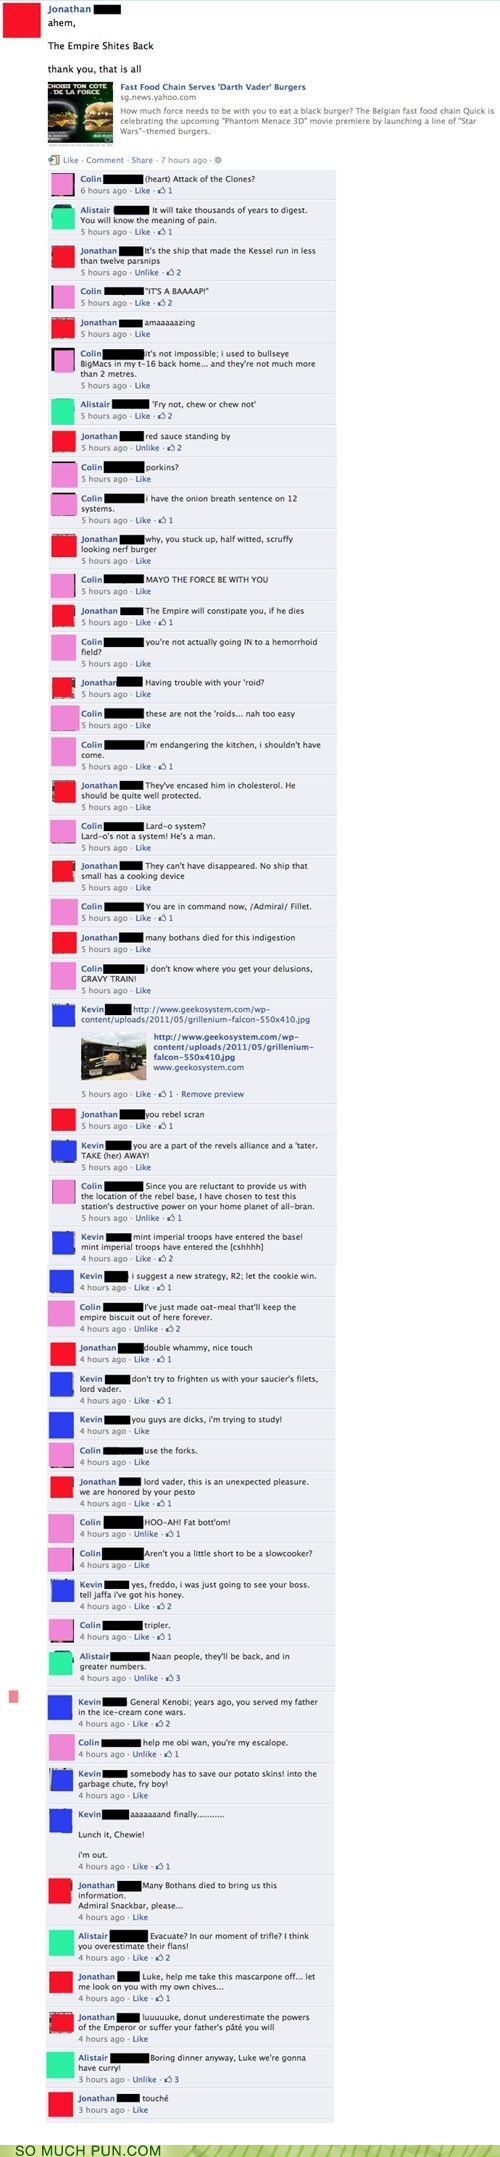 conversation,epicurean,facebook,food,Hall of Fame,star wars,status